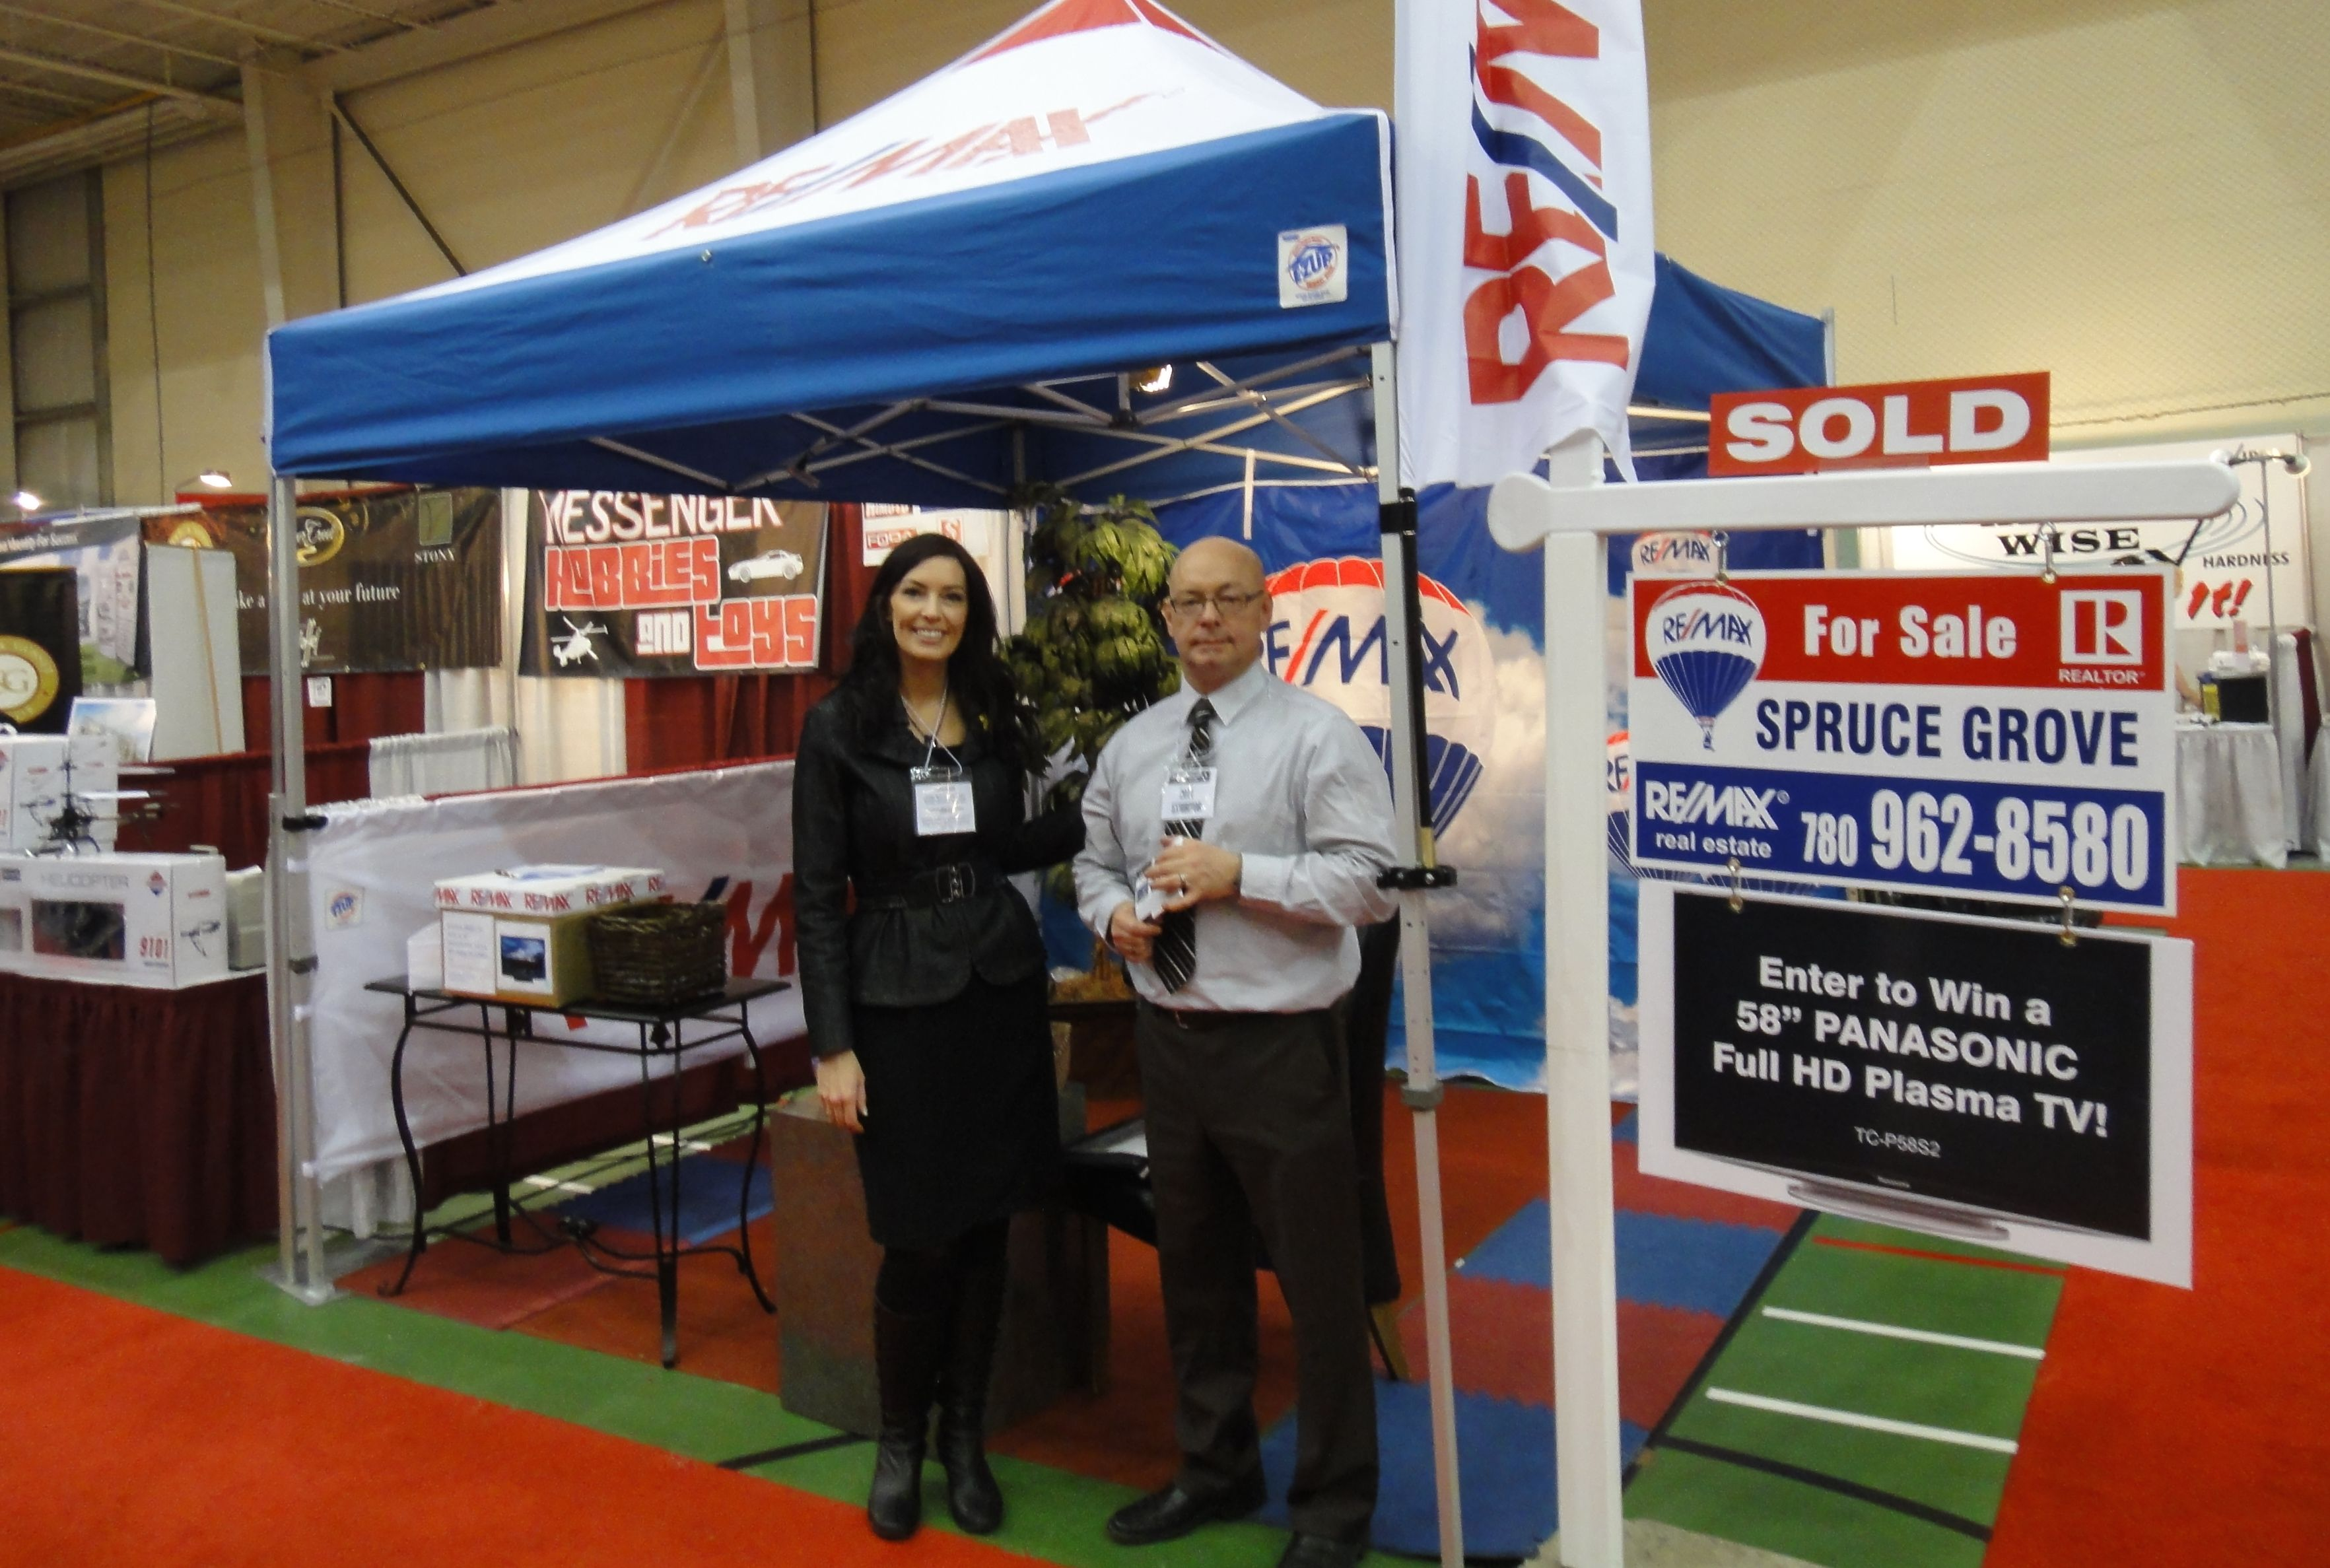 Related image | Realtor Vendor Booth Ideas in 2019 | Vendor booth, Vendor table, Show booth